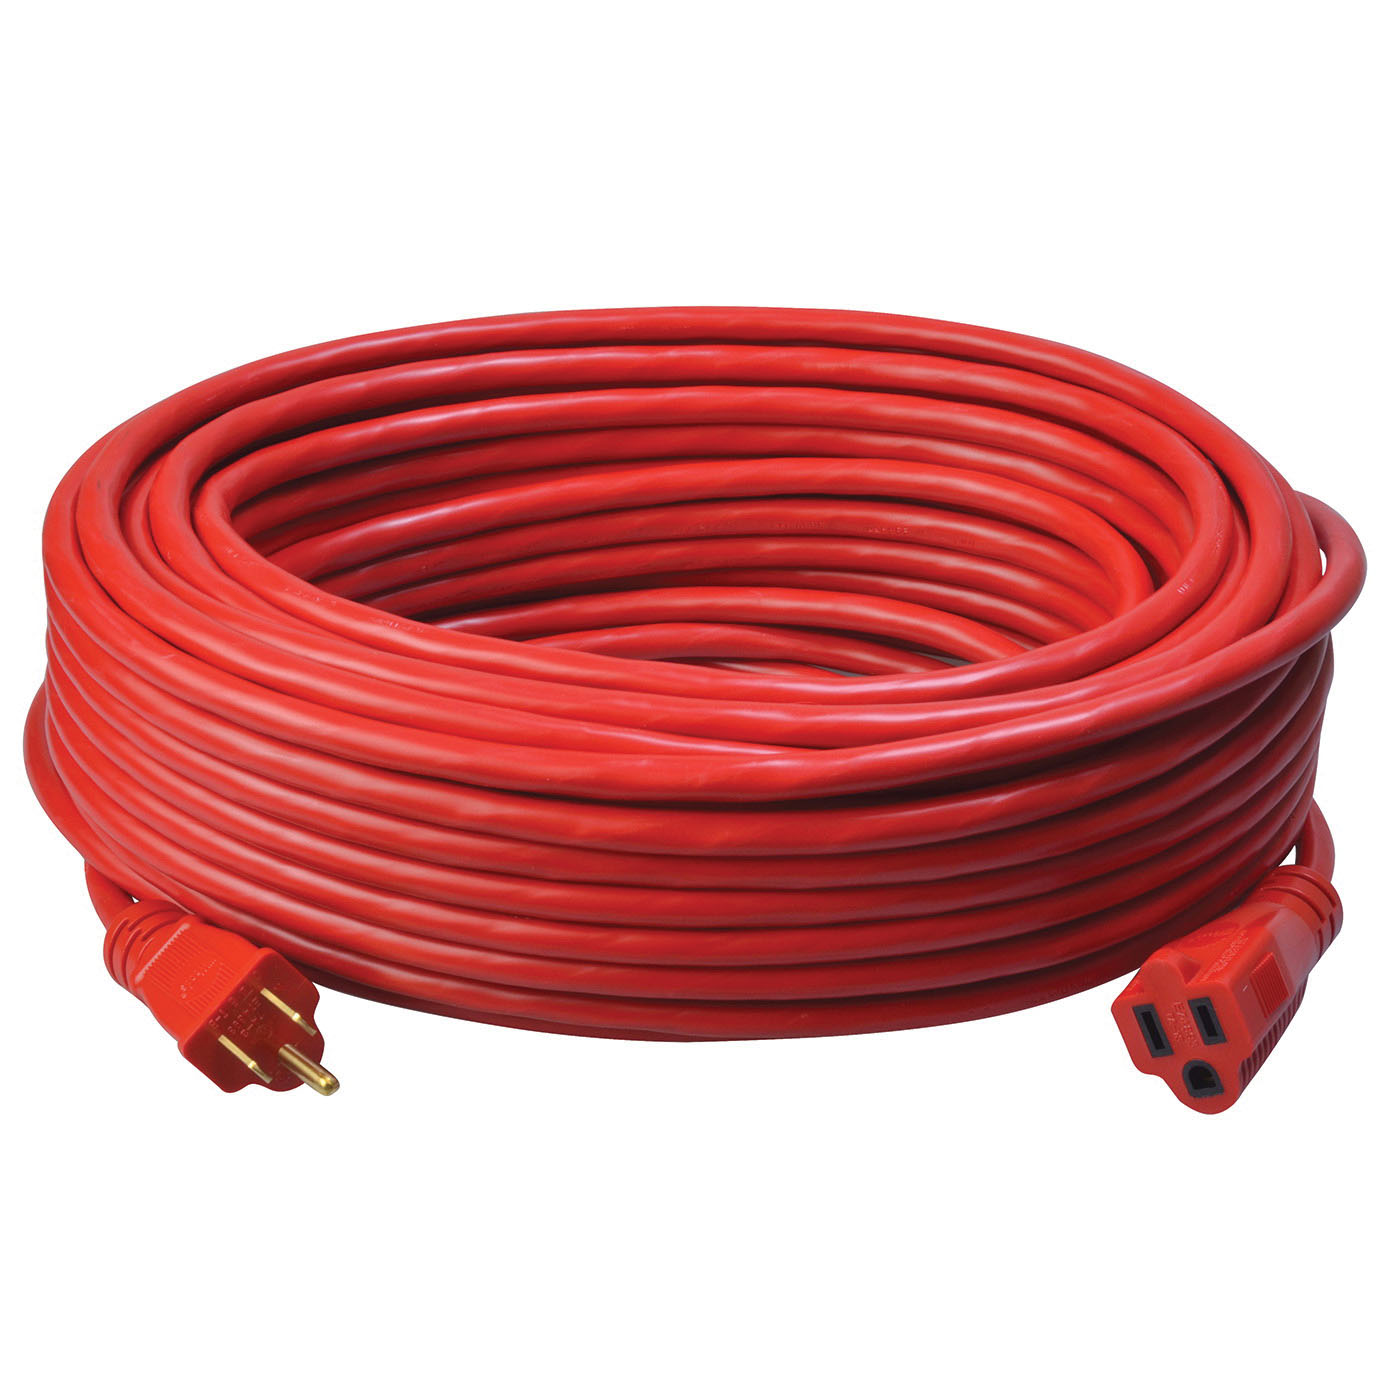 Southwire® 2409SW8804 Red Medium Duty Extension Cord, 100 ft